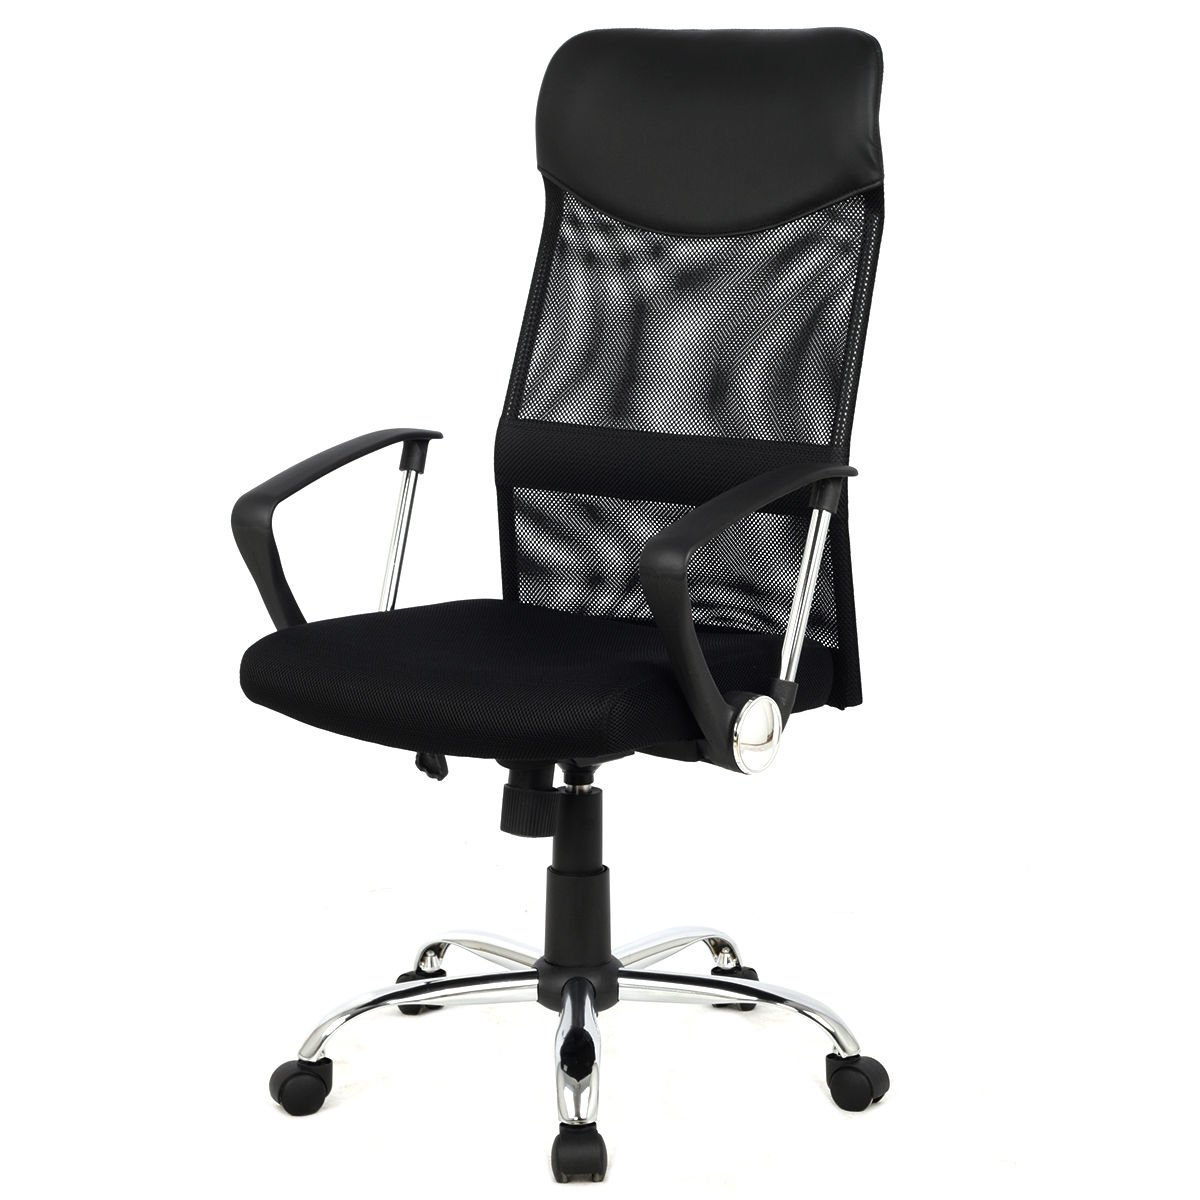 Modern Furniture 8074-BK High-Back Swivel Ergonomic Mesh/PVC Seat Desk Task Computer Swivel Lumbar Support Executive Office Chair with Seat Height Adjustment by mck (Image #2)